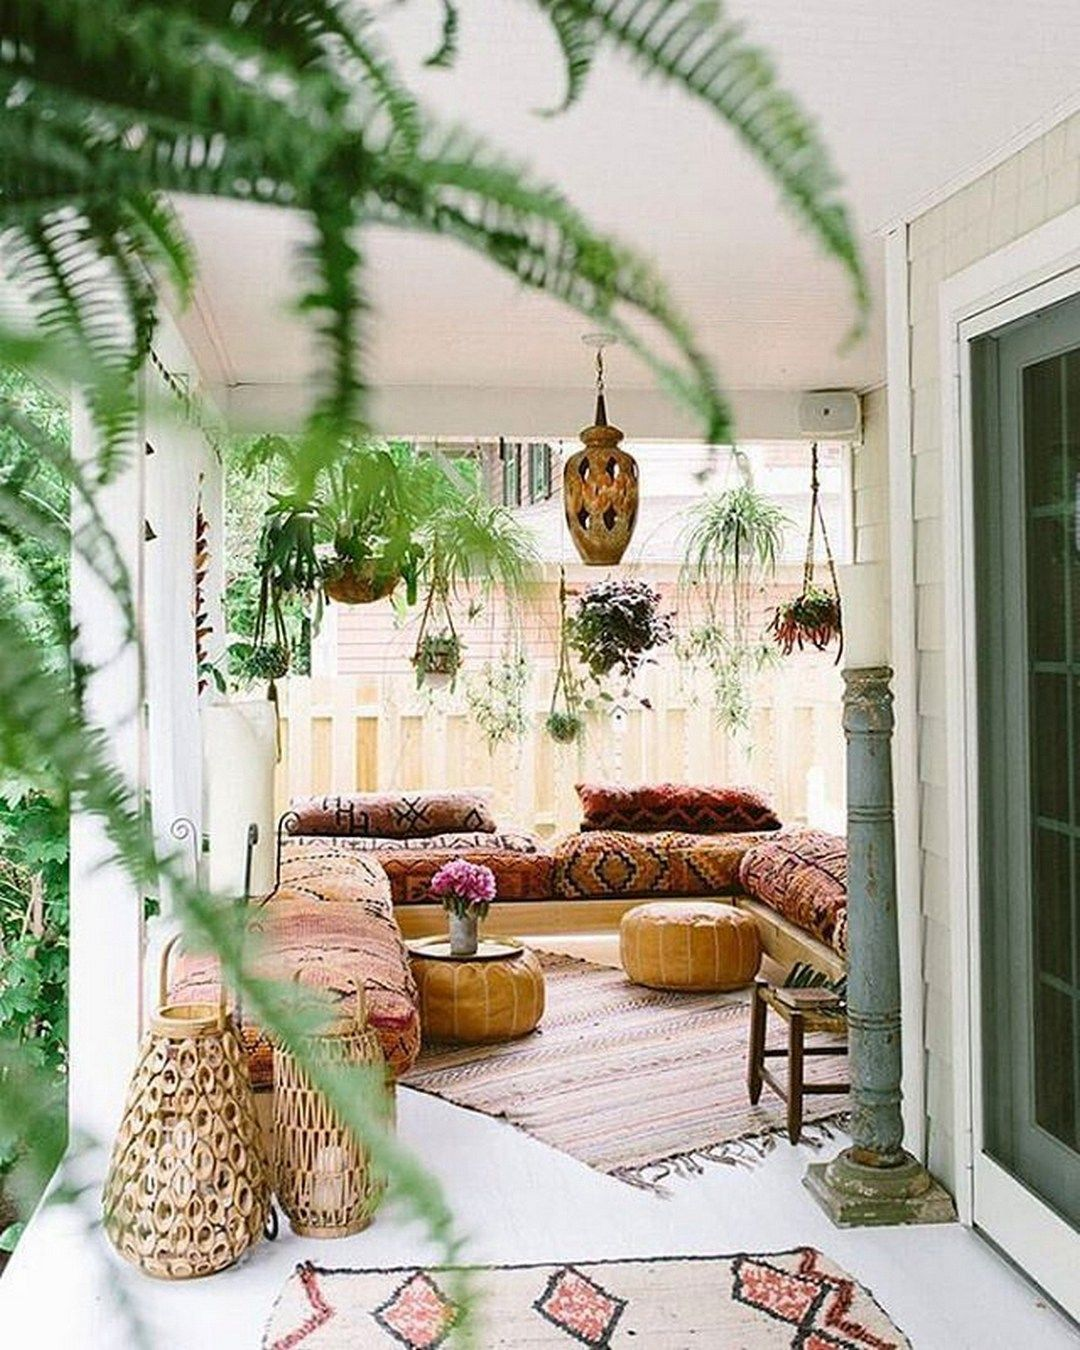 g home ideas decoration chic bohemian furniture style boho door decor fall